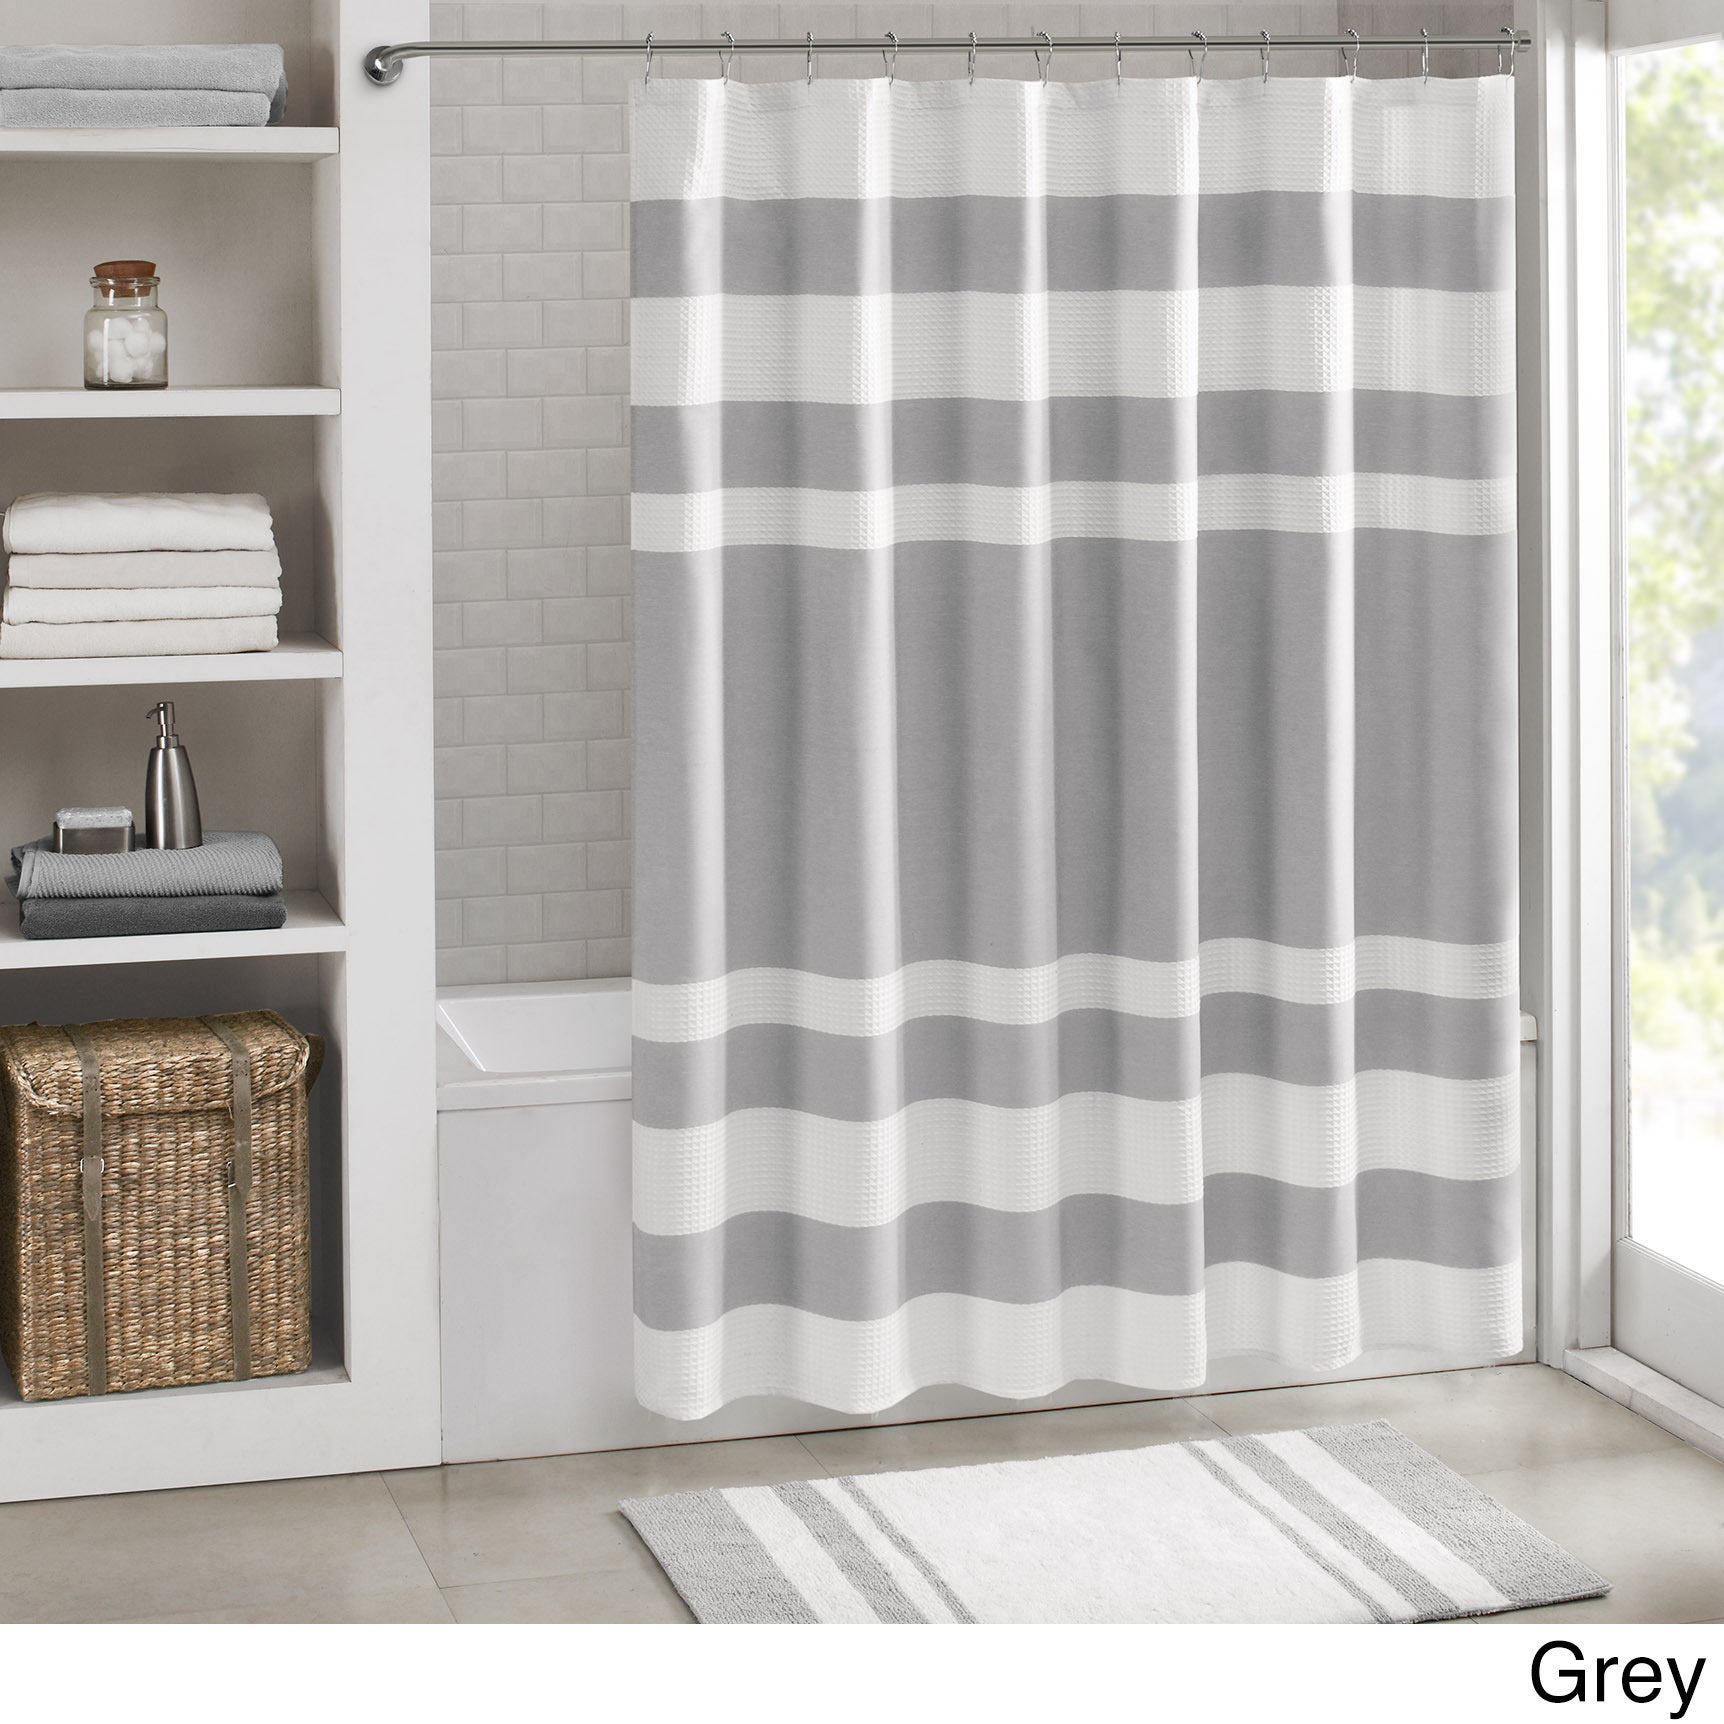 larger microfiber maytex repellent curtains shower liner or water waffle curtain view white dp soft fabric